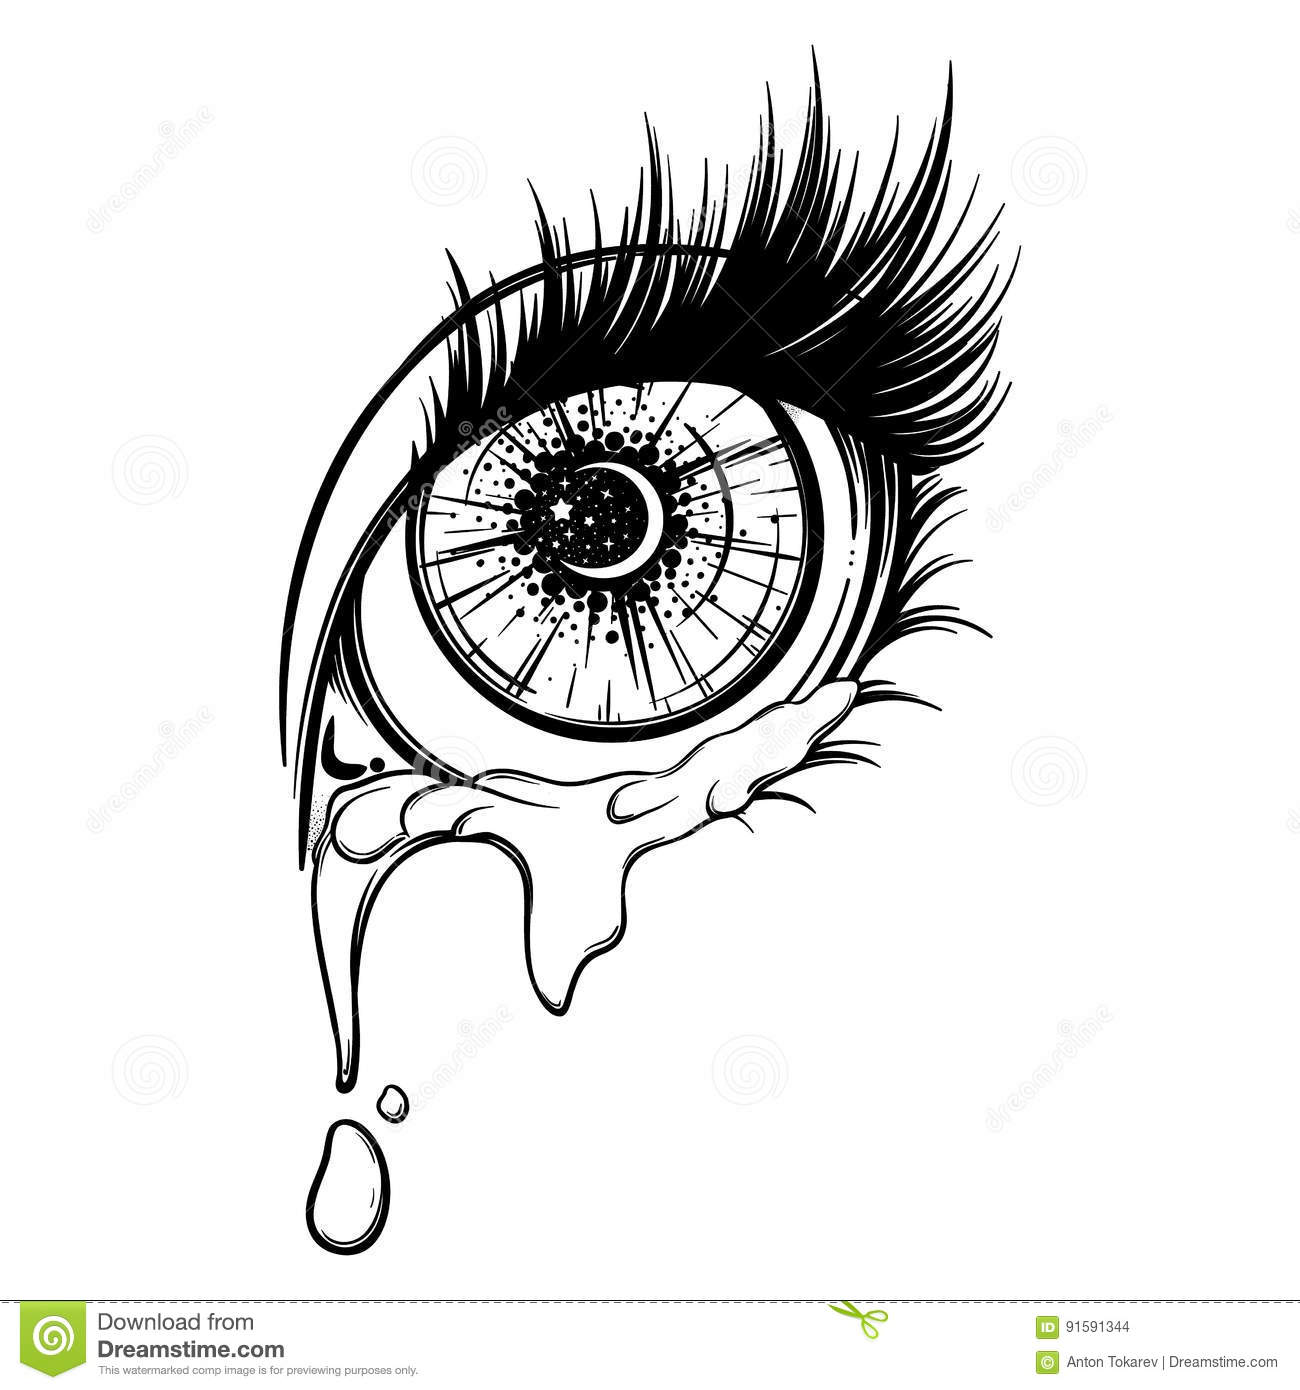 Crying Eye In Anime Or Manga Style With Teardrops And